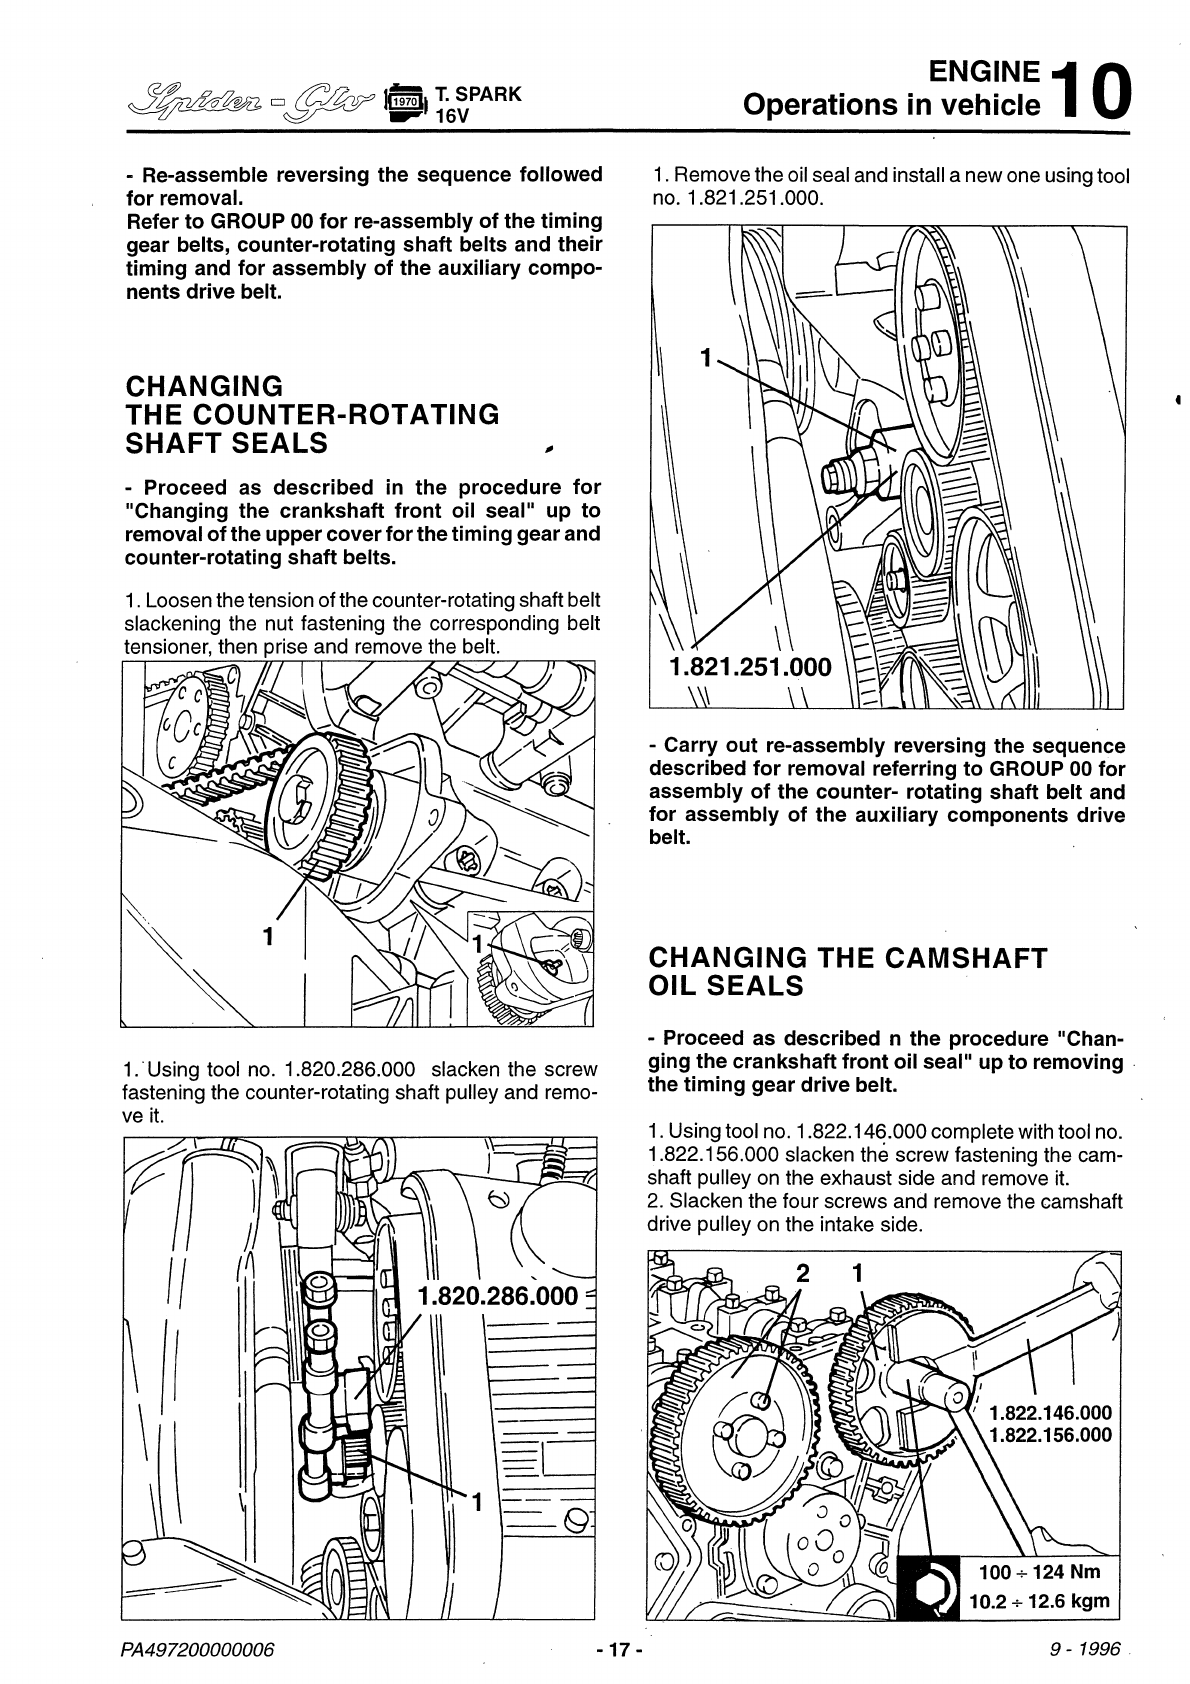 Repair Instructions Vol 1 Pdf Alfa Romeo Timing Gear See Our Other Gtv Manuals